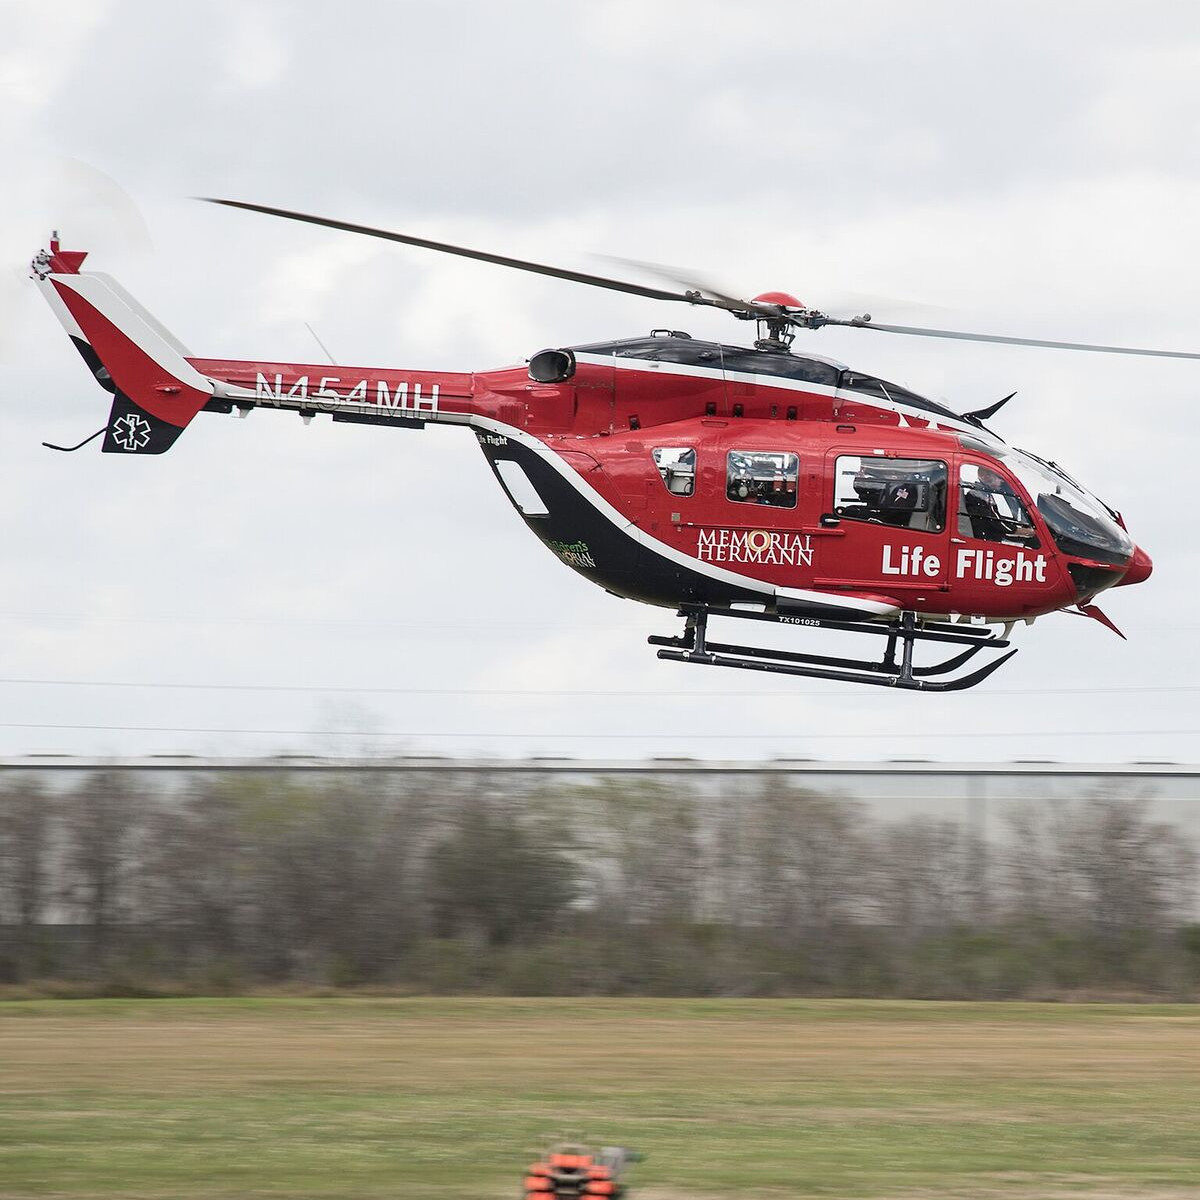 Lifeflight helicopter at Memorial Hermann Clay Shoot